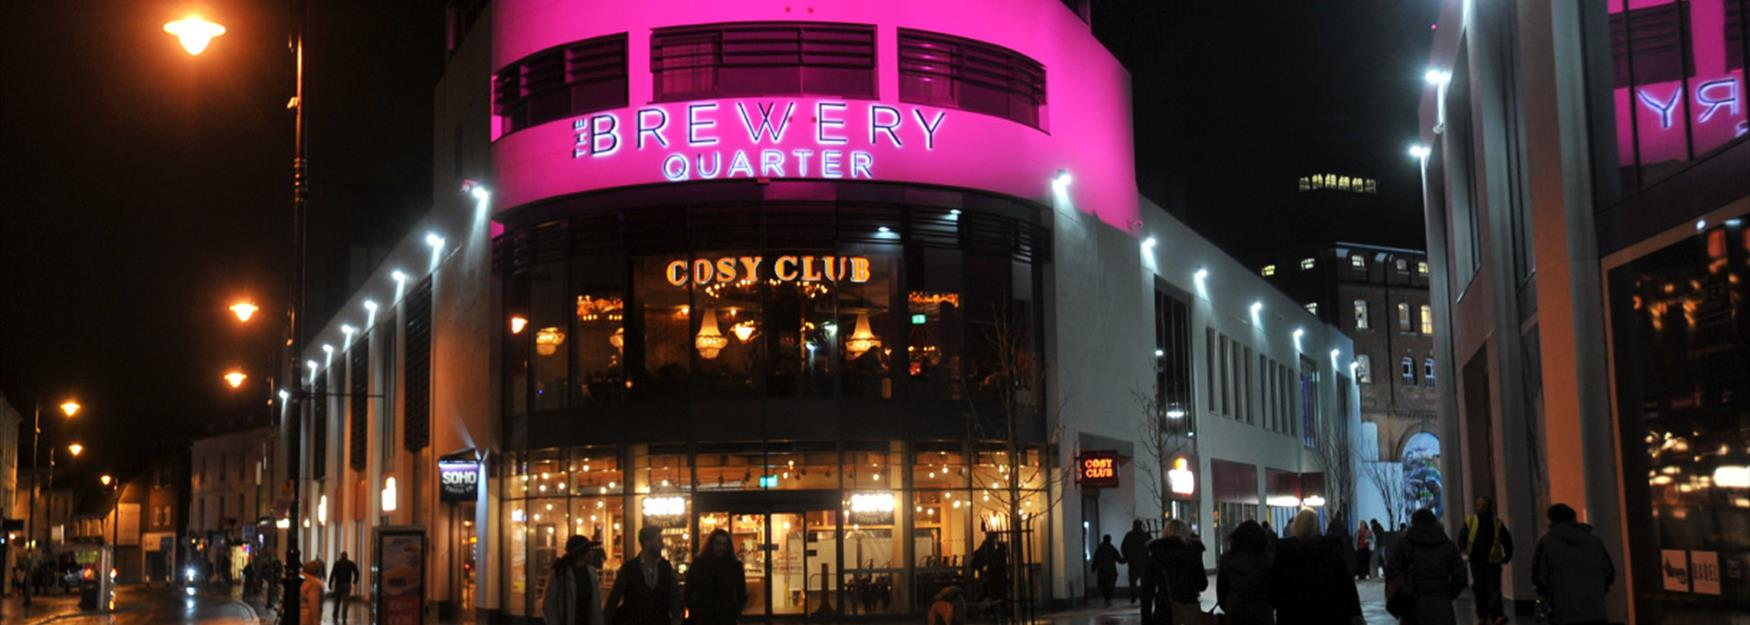 The Brewery Quarter lit up at night